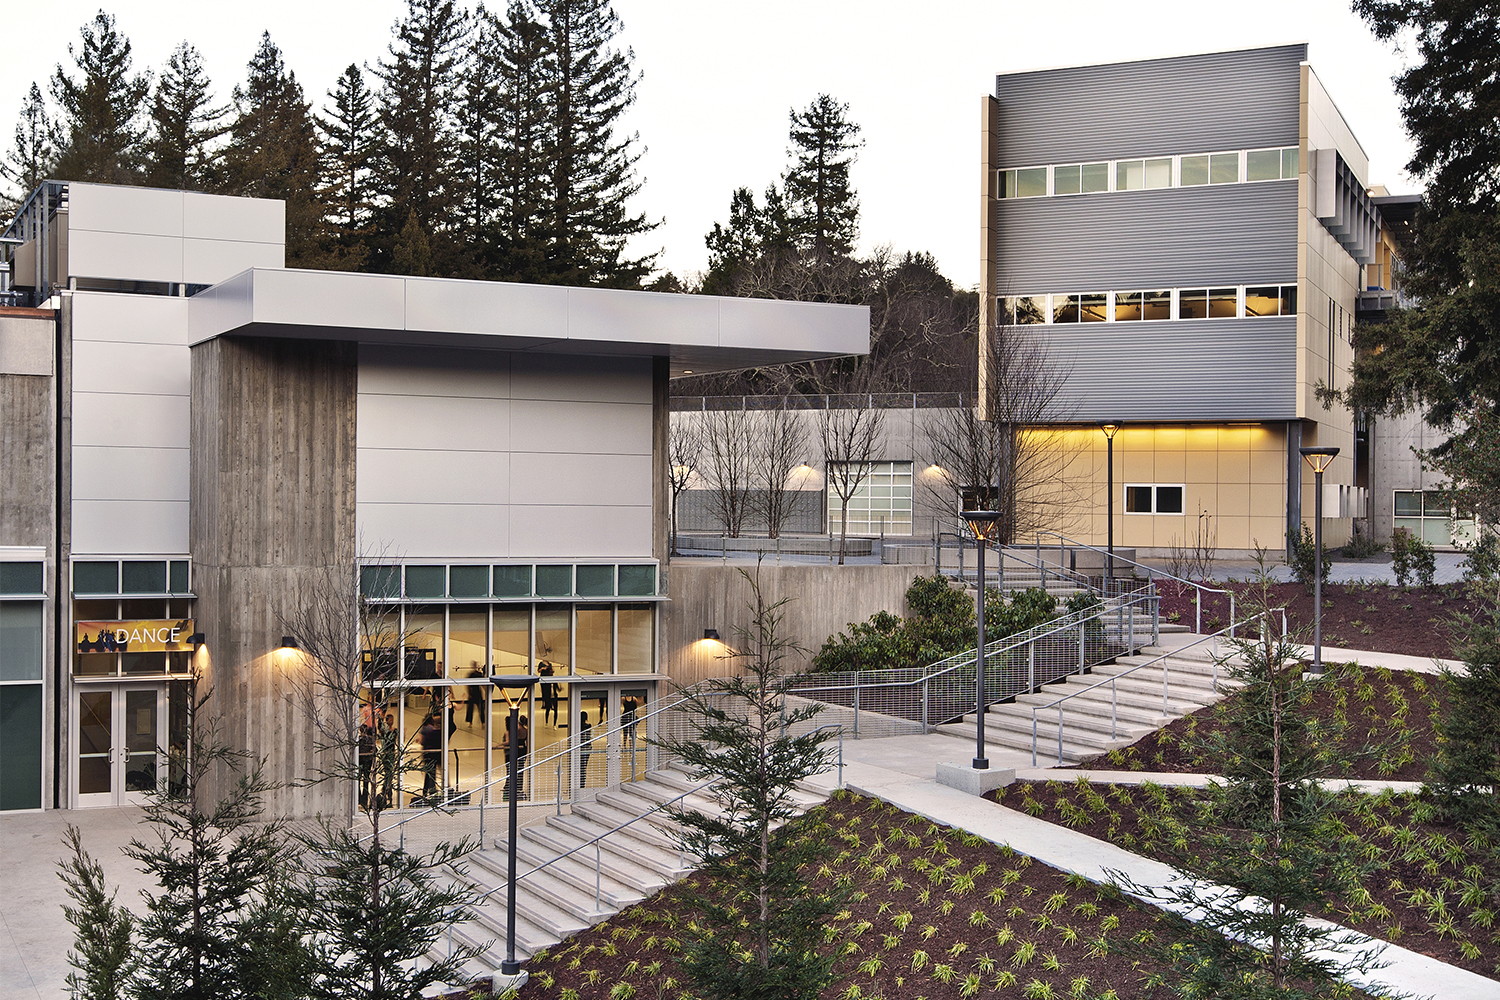 01_Projects_Community College Complex - Performing Arts Building.jpg